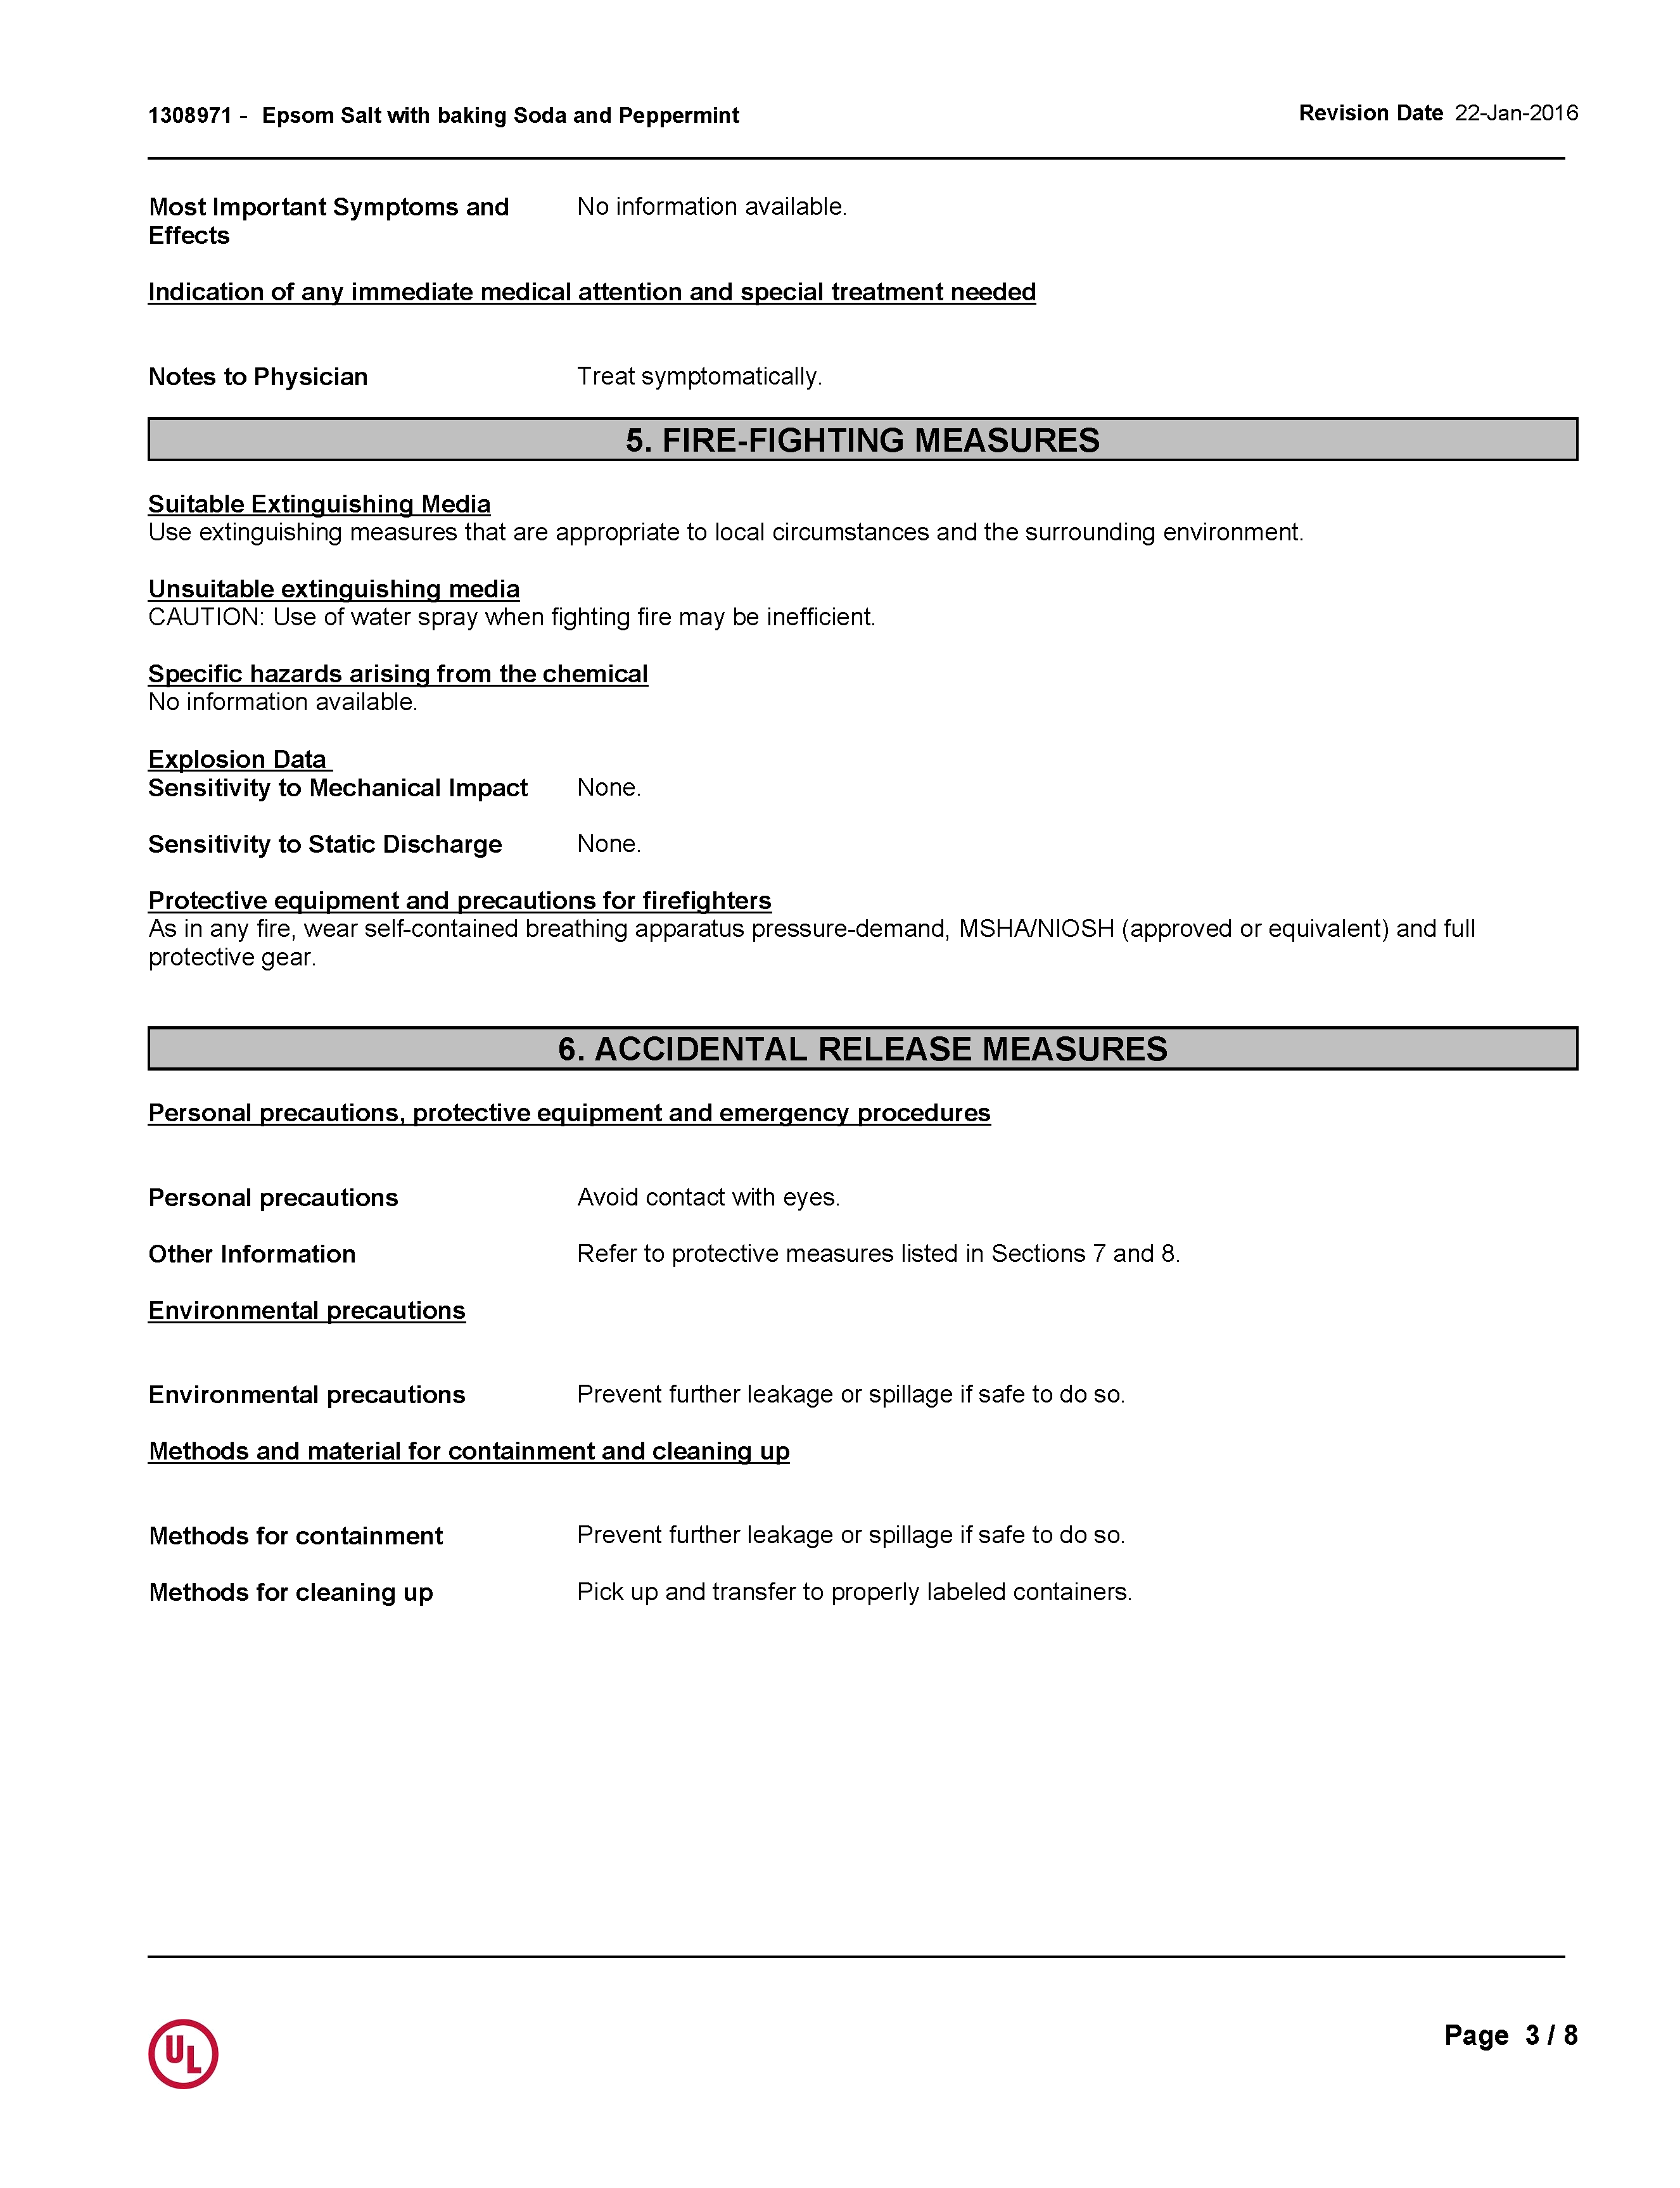 100 Radiologist Resume Download Gagan Resume Docshare Tips